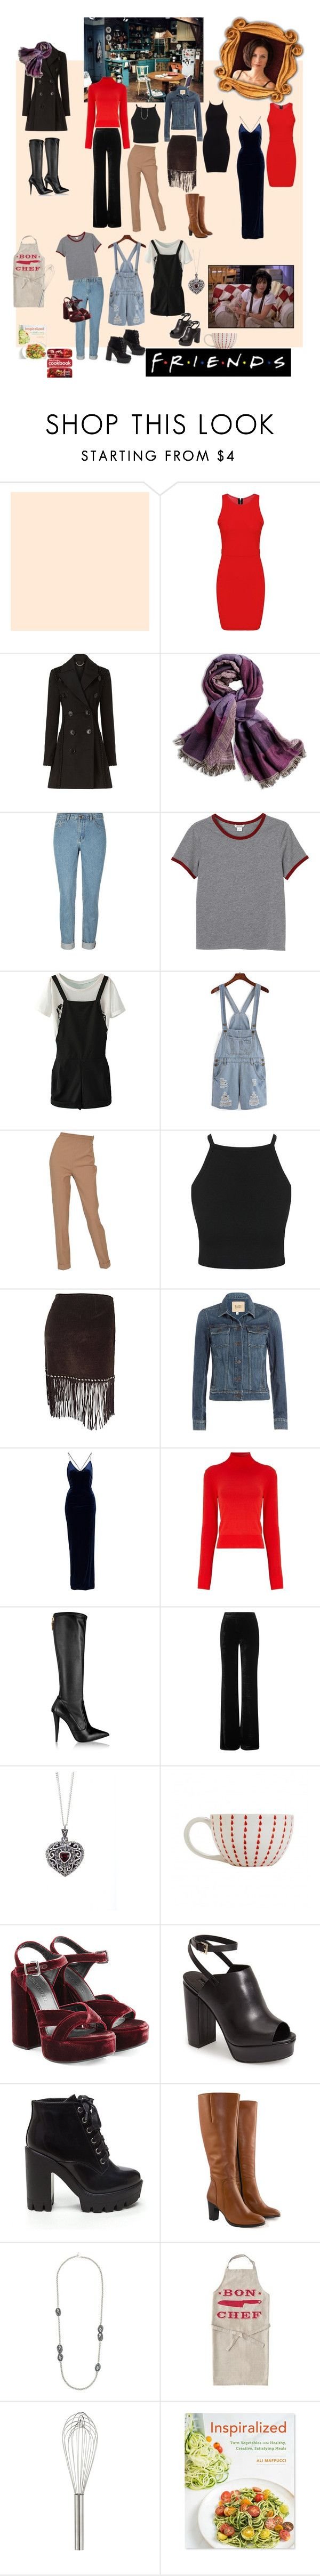 """""""Monica Geller"""" by brianna-marie-fulce ❤ liked on Polyvore featuring Burberry, Chico's, Monki, Hermès, Moschino, Paige Denim, NLY Eve, Osman, Giuseppe Zanotti and Emilio Pucci"""